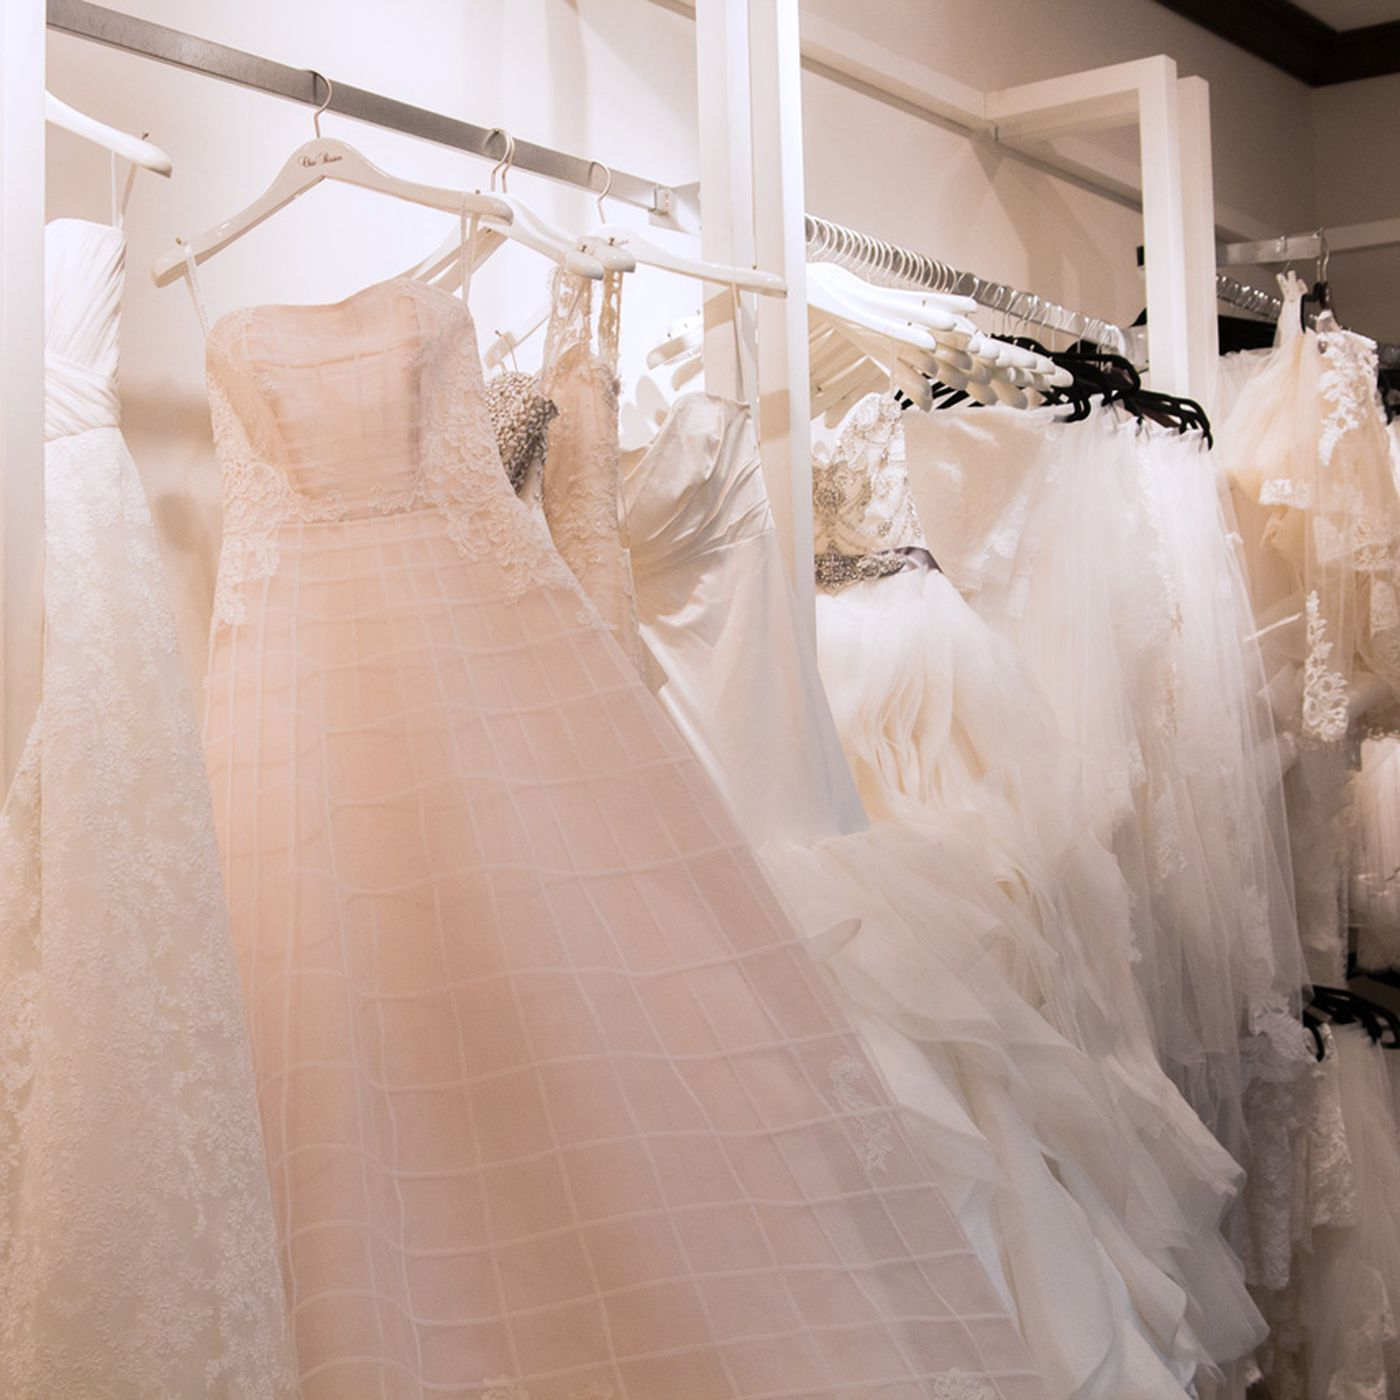 Miami S 18 Best Bridal Stores For Wedding Dresses And Accessories